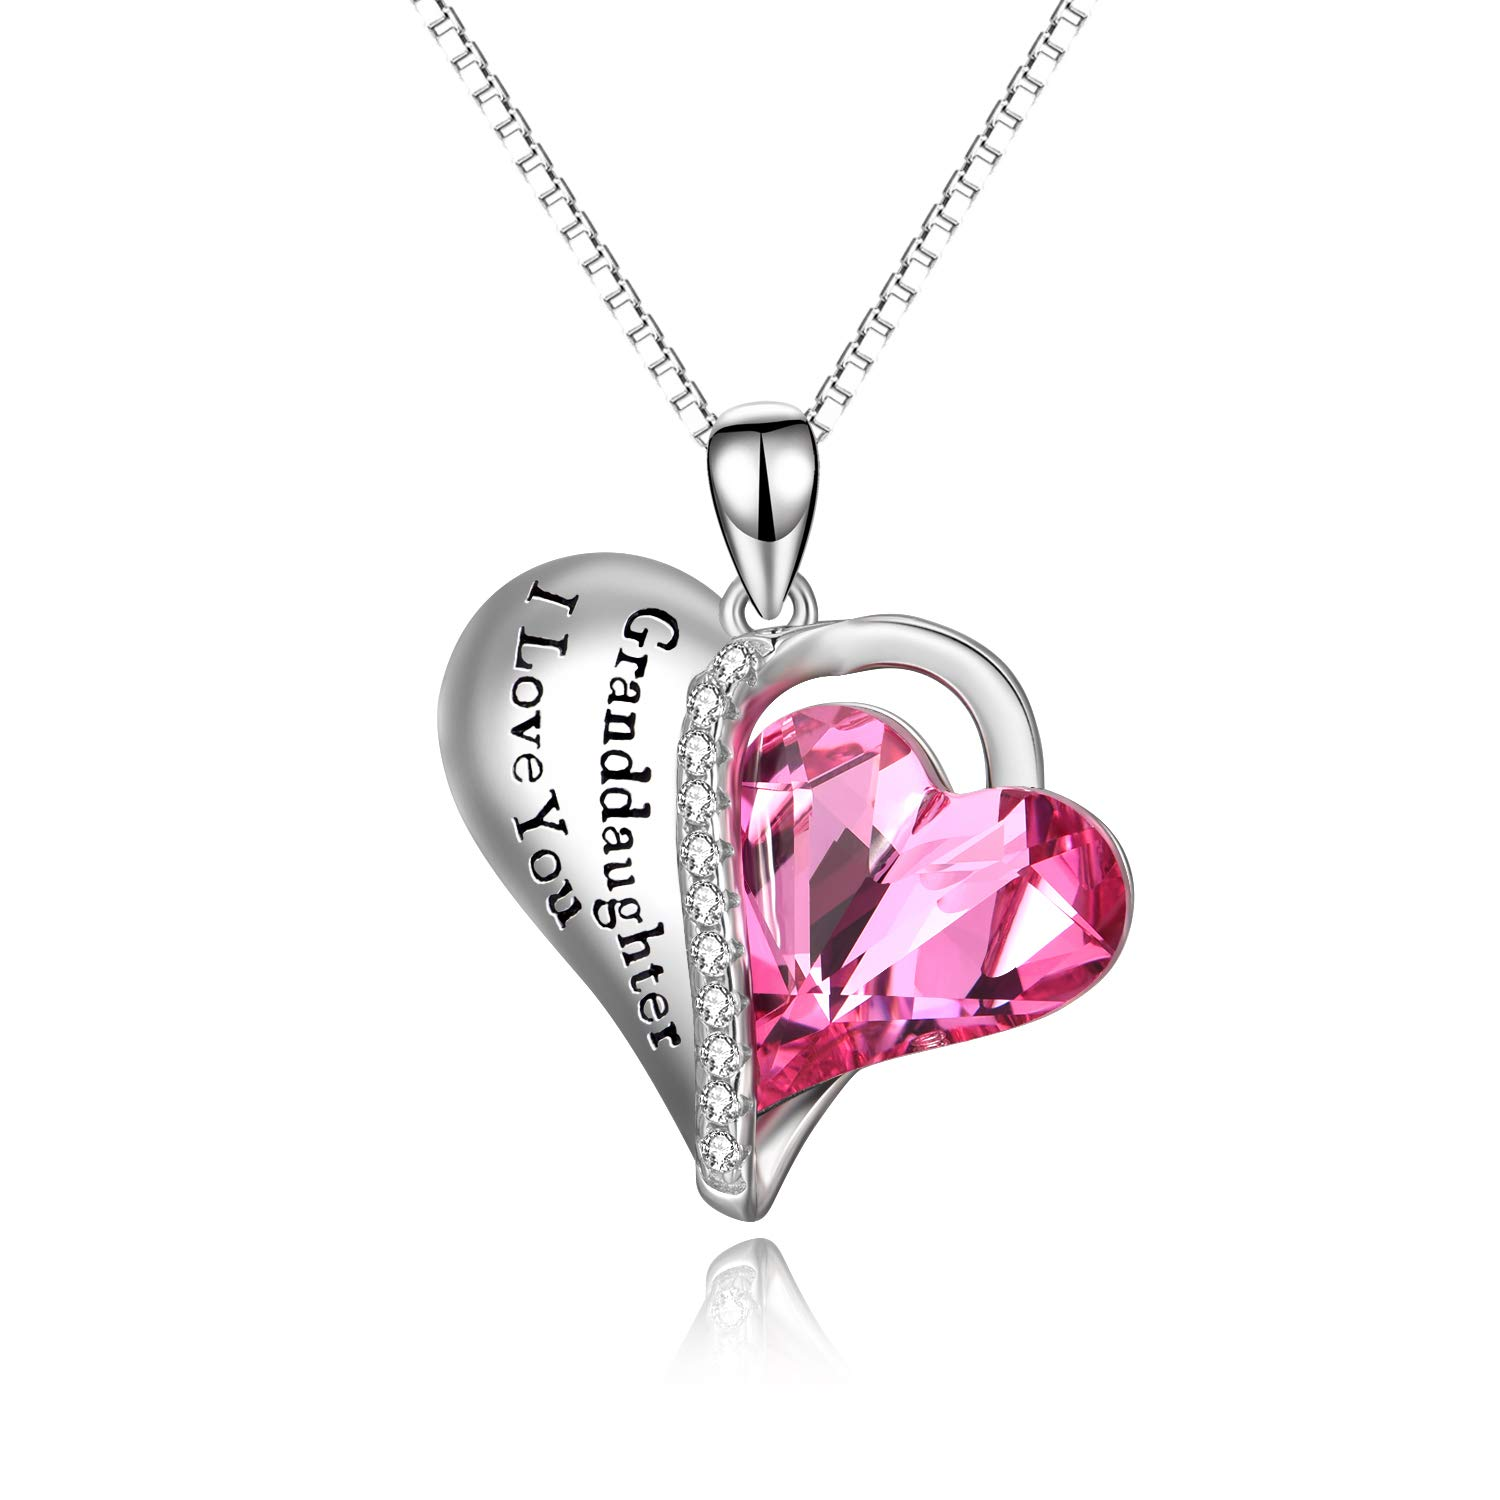 AOBOCO Granddaughter Gifts - Granddaughter I Love You - Sterling Silver Heart Necklaces from Grandma with Pink Swarovski Crystals